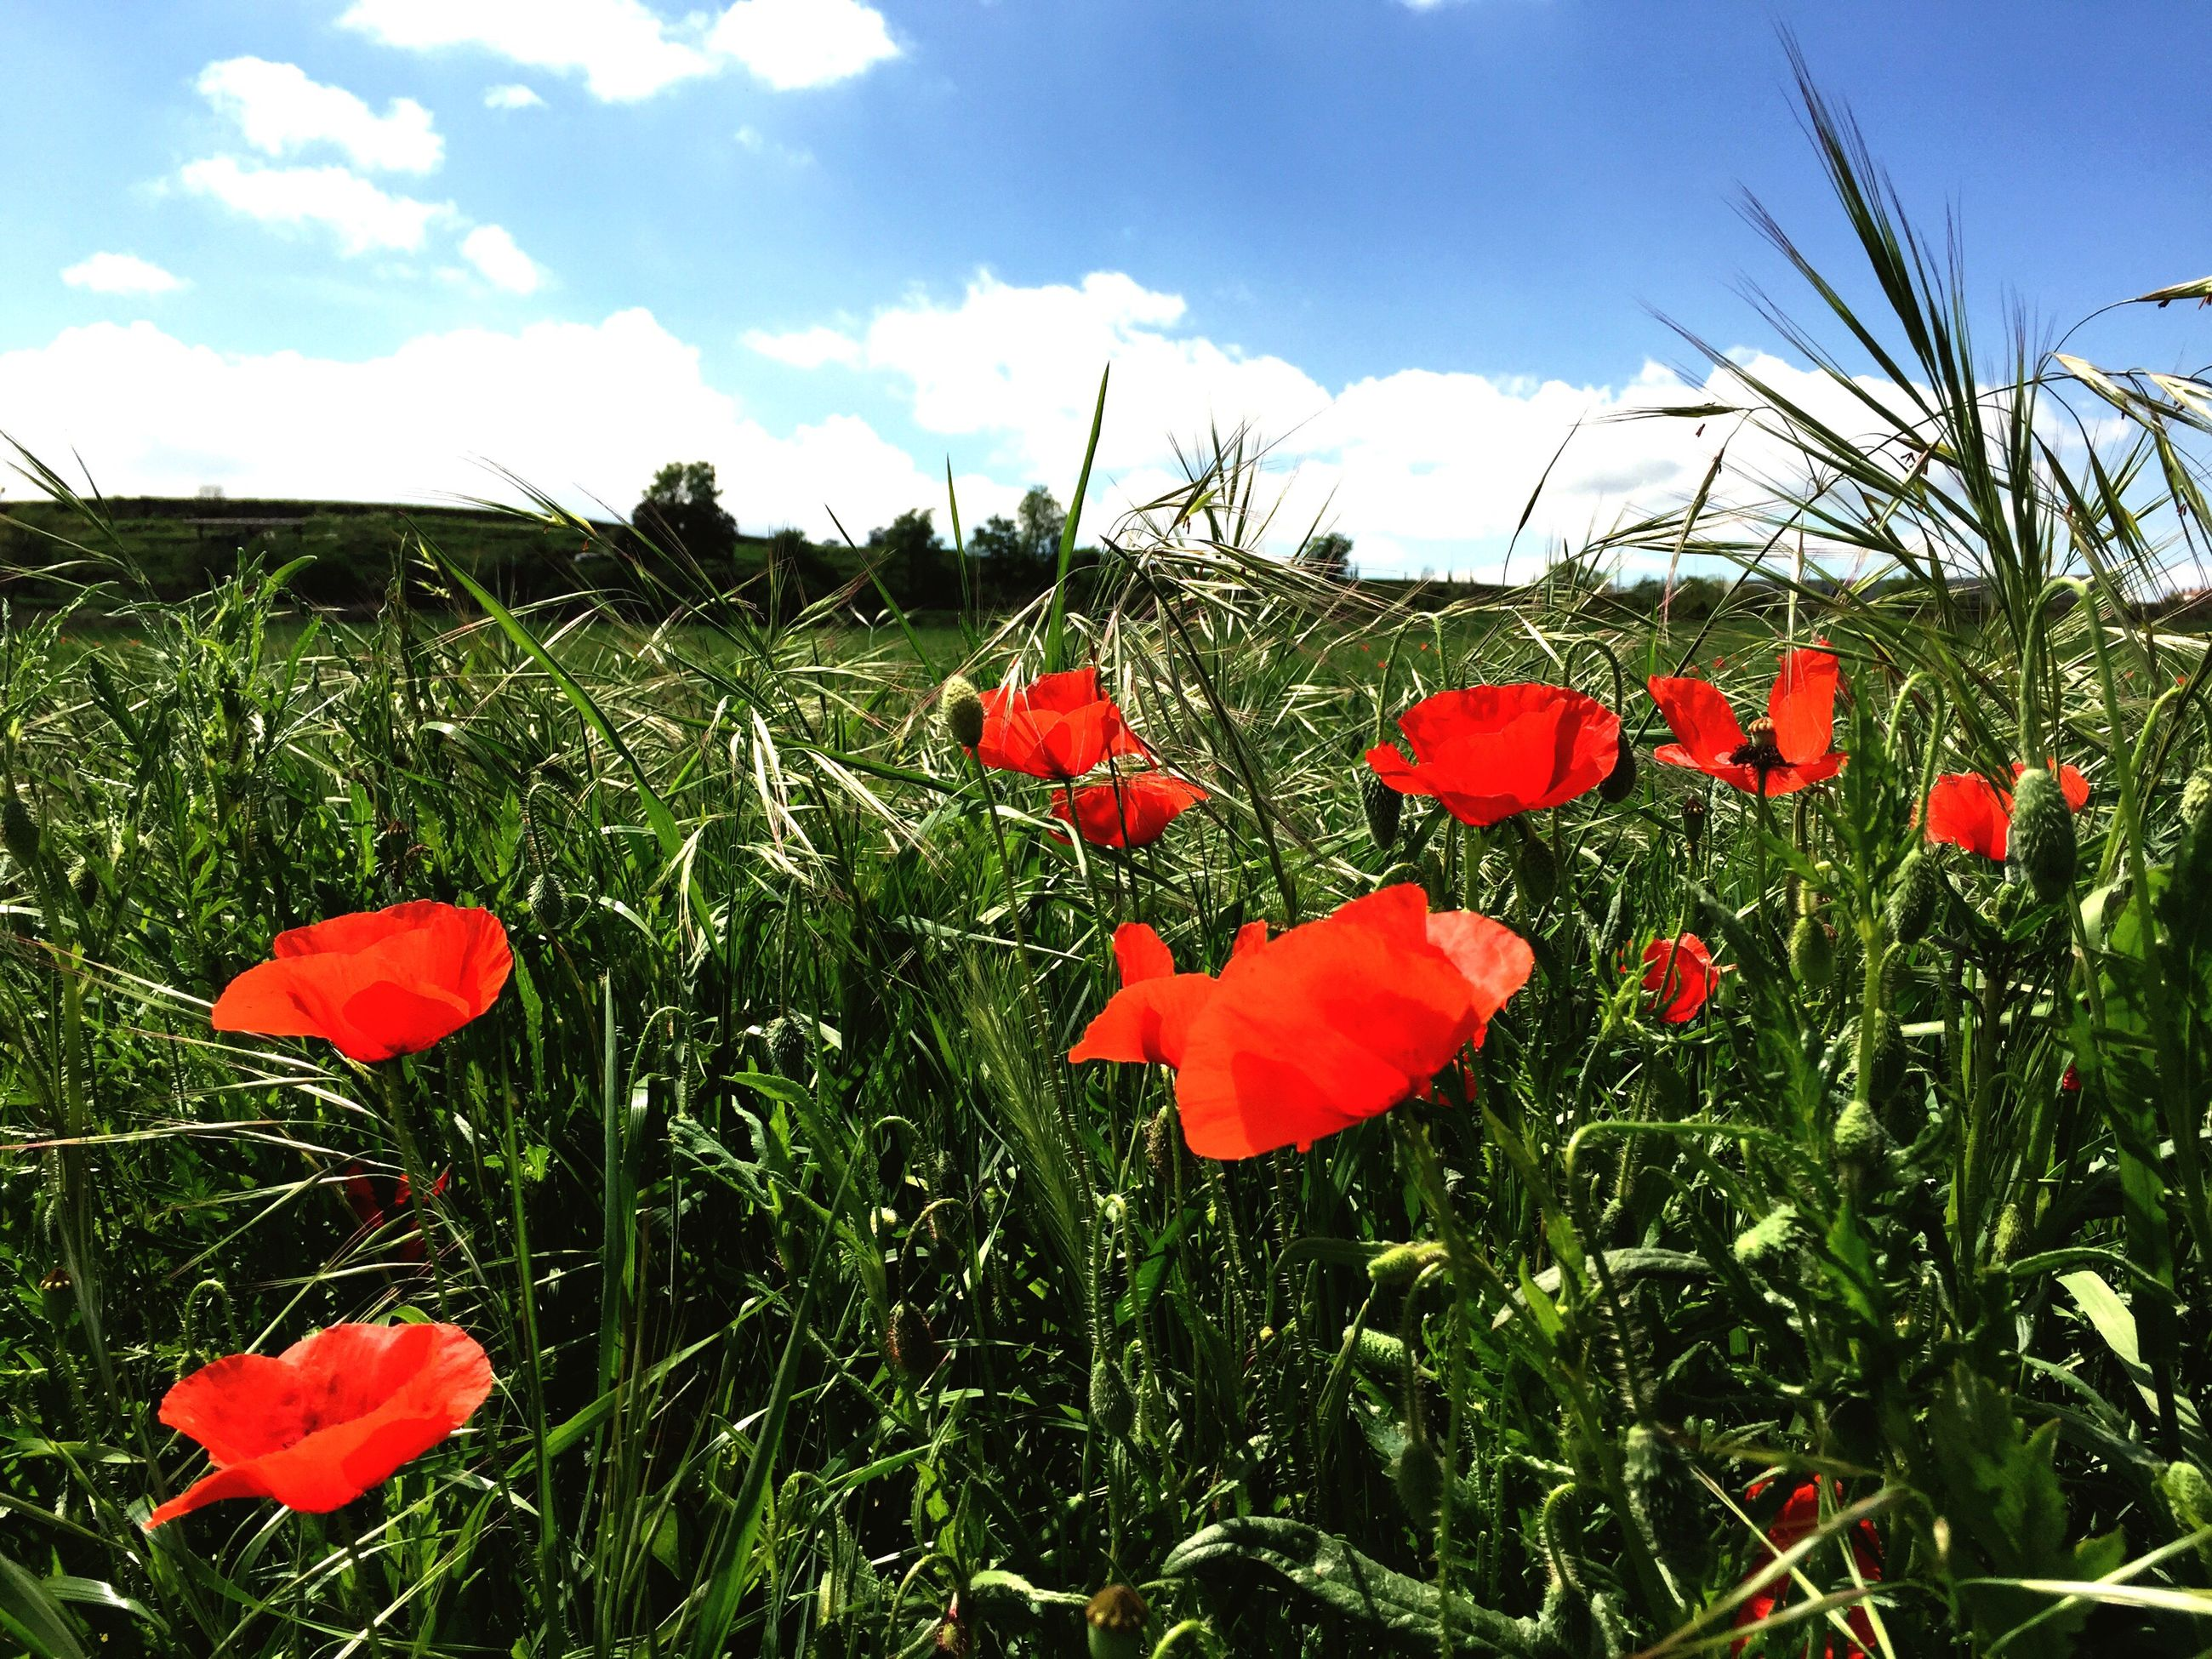 red, poppy, grass, flower, field, growth, beauty in nature, sky, freshness, nature, fragility, landscape, plant, tranquility, tranquil scene, meadow, petal, scenics, wildflower, stem